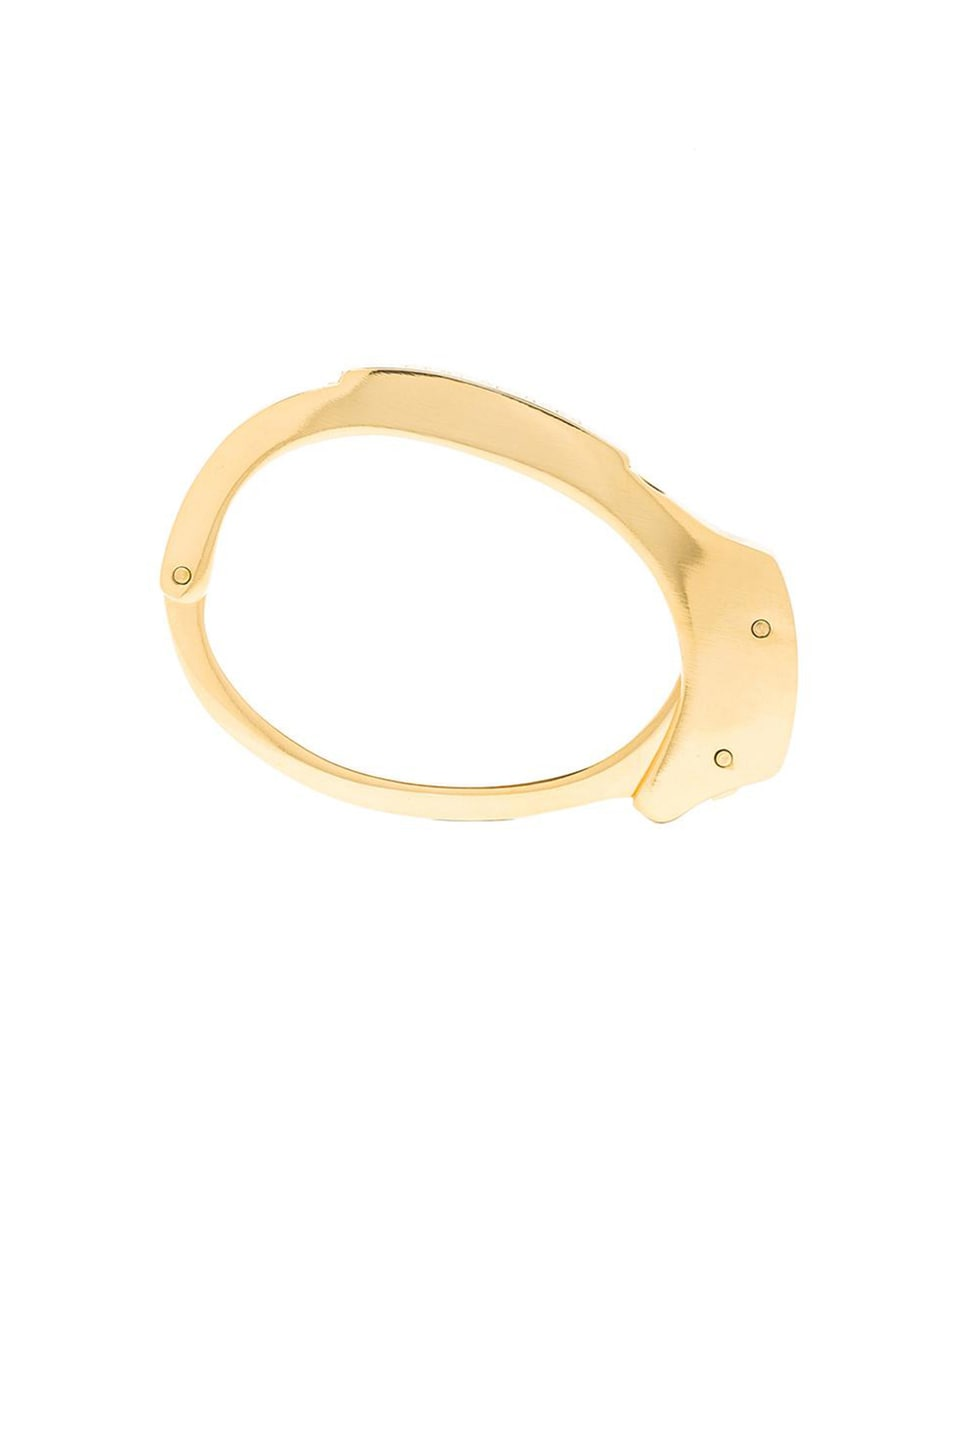 Cast of Vices Handcuff 14K Gold Plated Bracelet in Gold